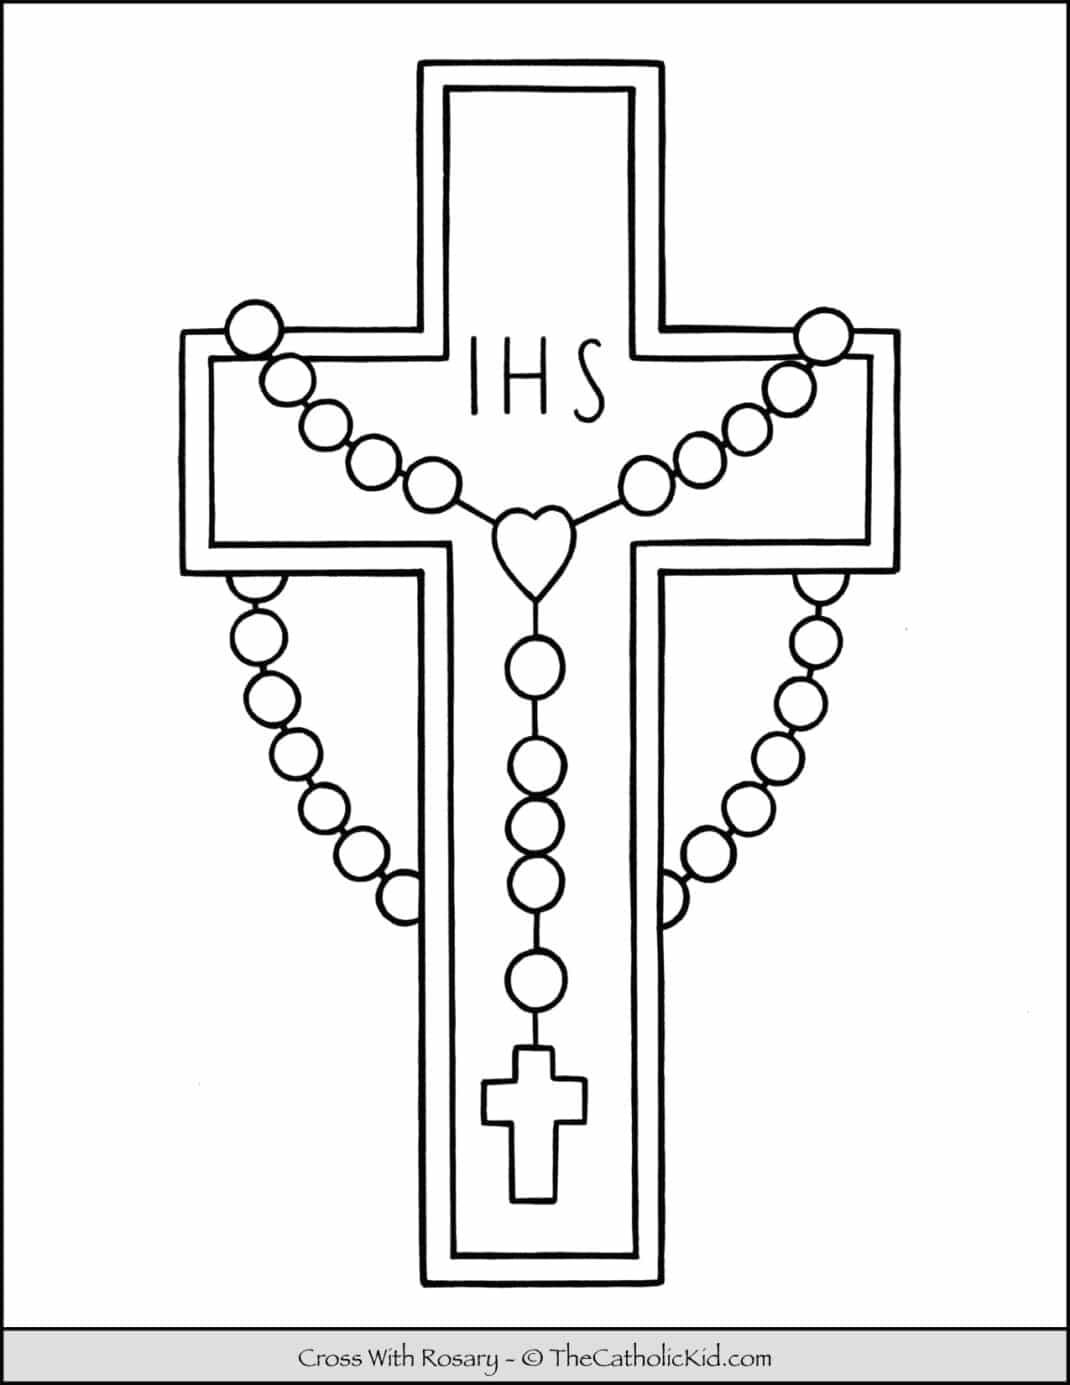 Cross With Rosary Coloring Page Thecatholickid Com Cross Coloring Page Catholic Coloring Coloring Pages